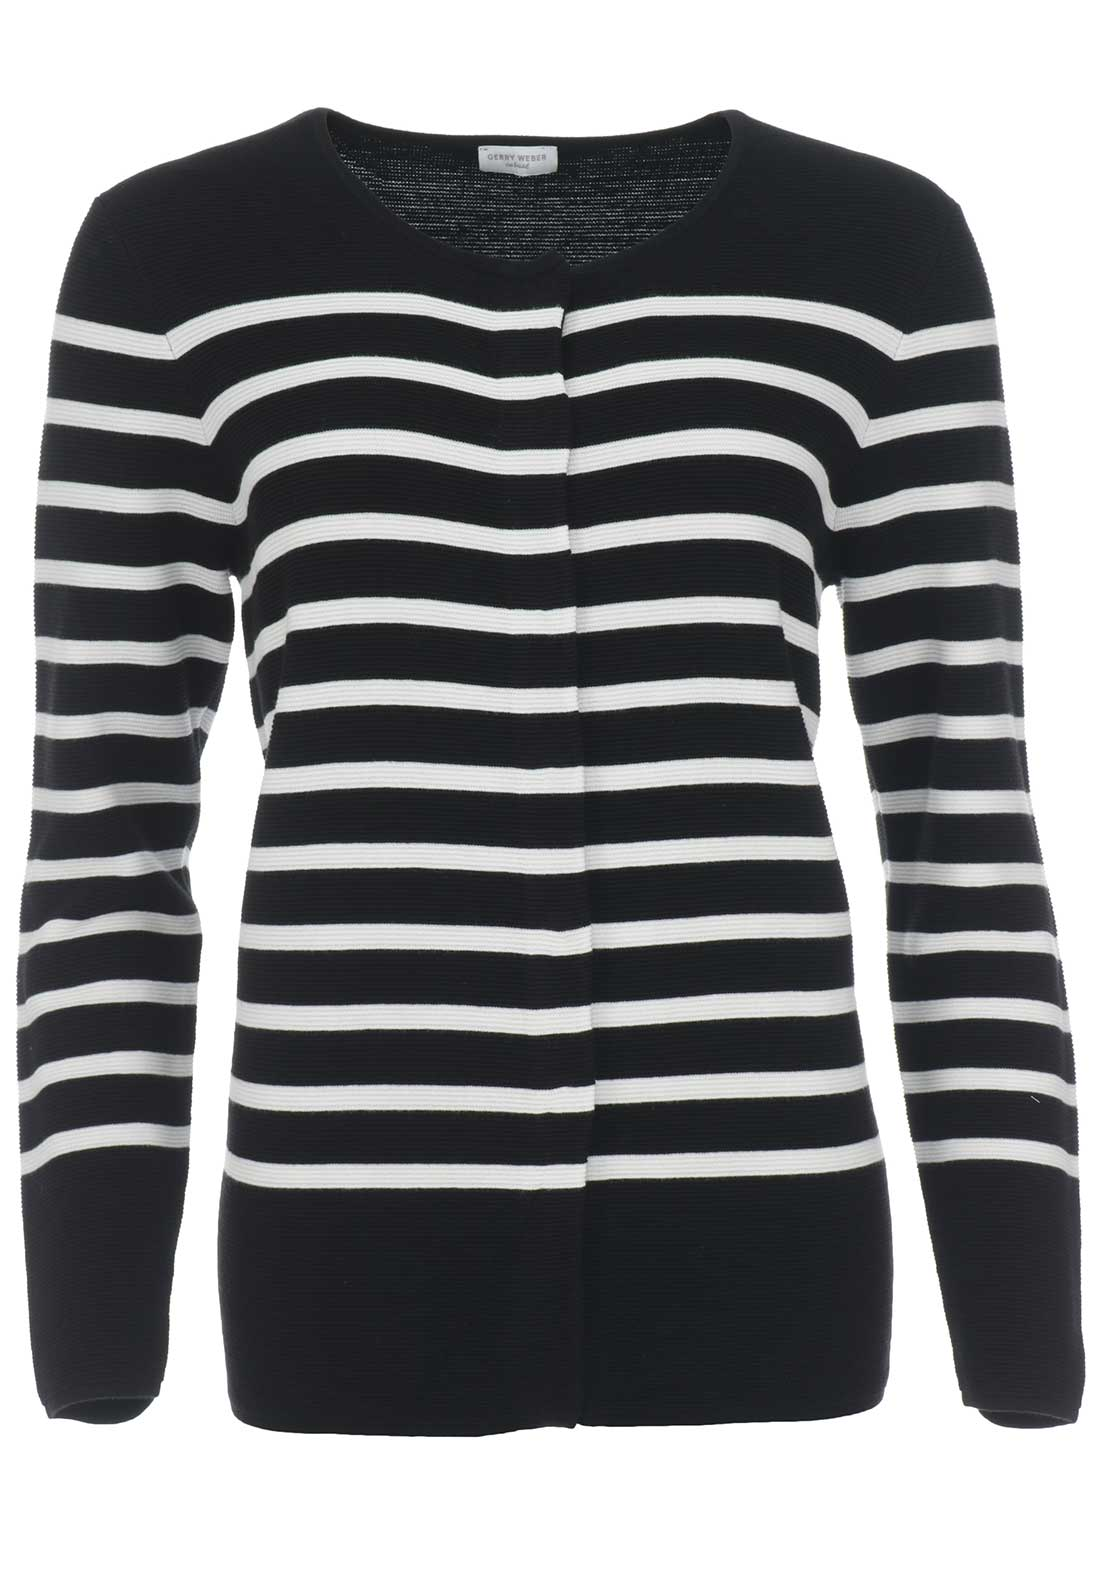 Gerry Weber Striped Ribbed Cardigan, Black & White